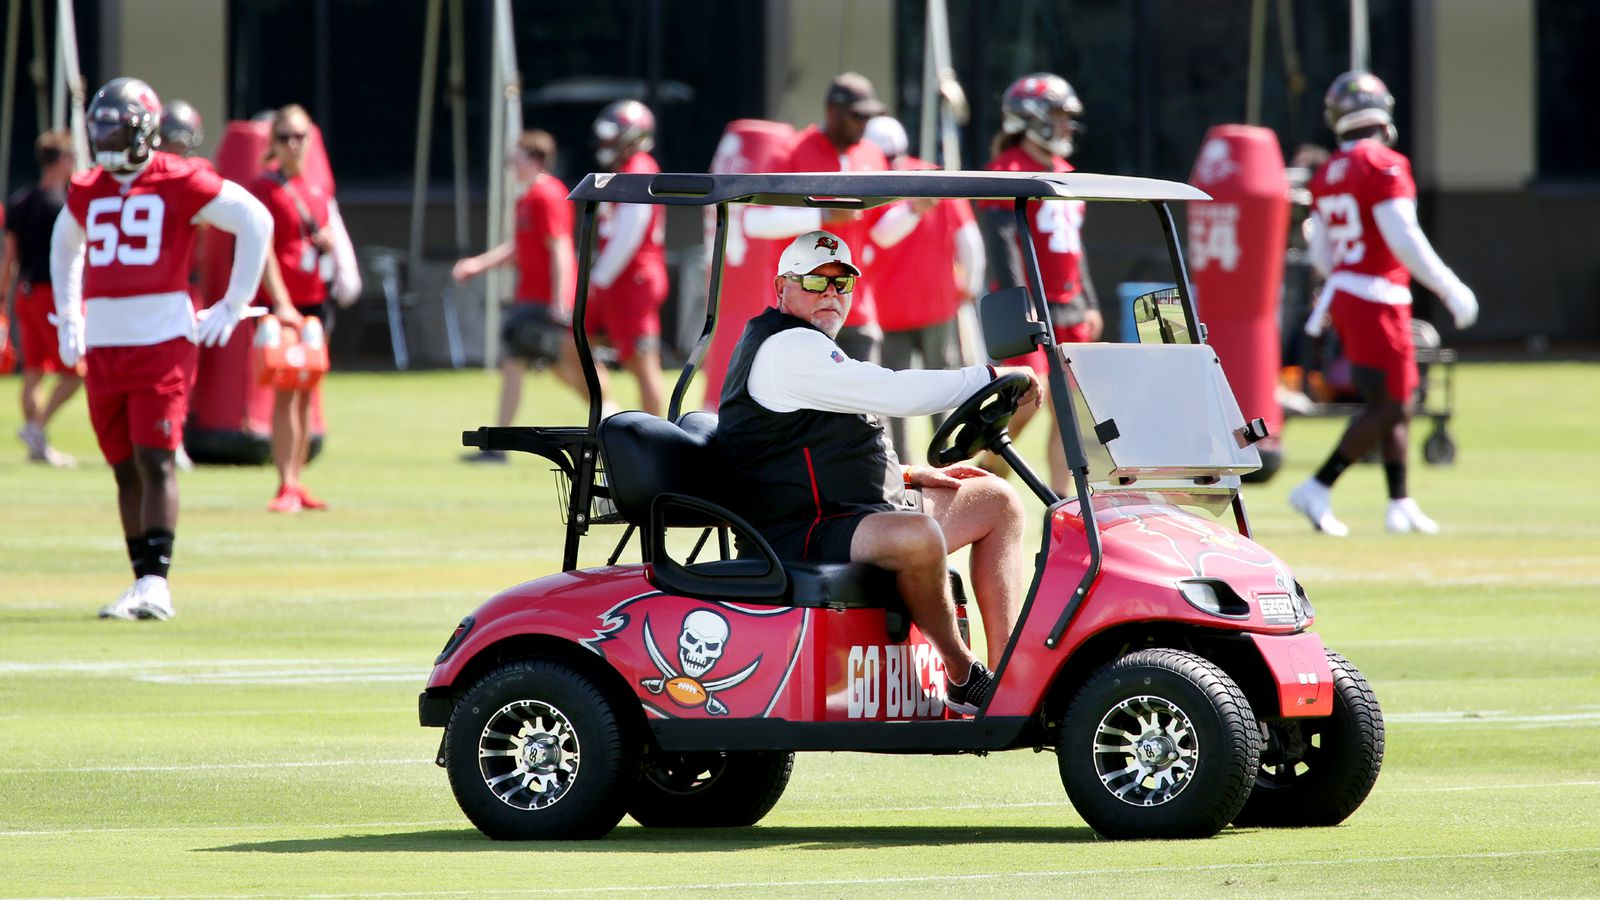 Buccaneers head coach Bruce Arians watches over Buccaneers 2021 training camp/via Douglass R. Clifford, Tampa Bay Times